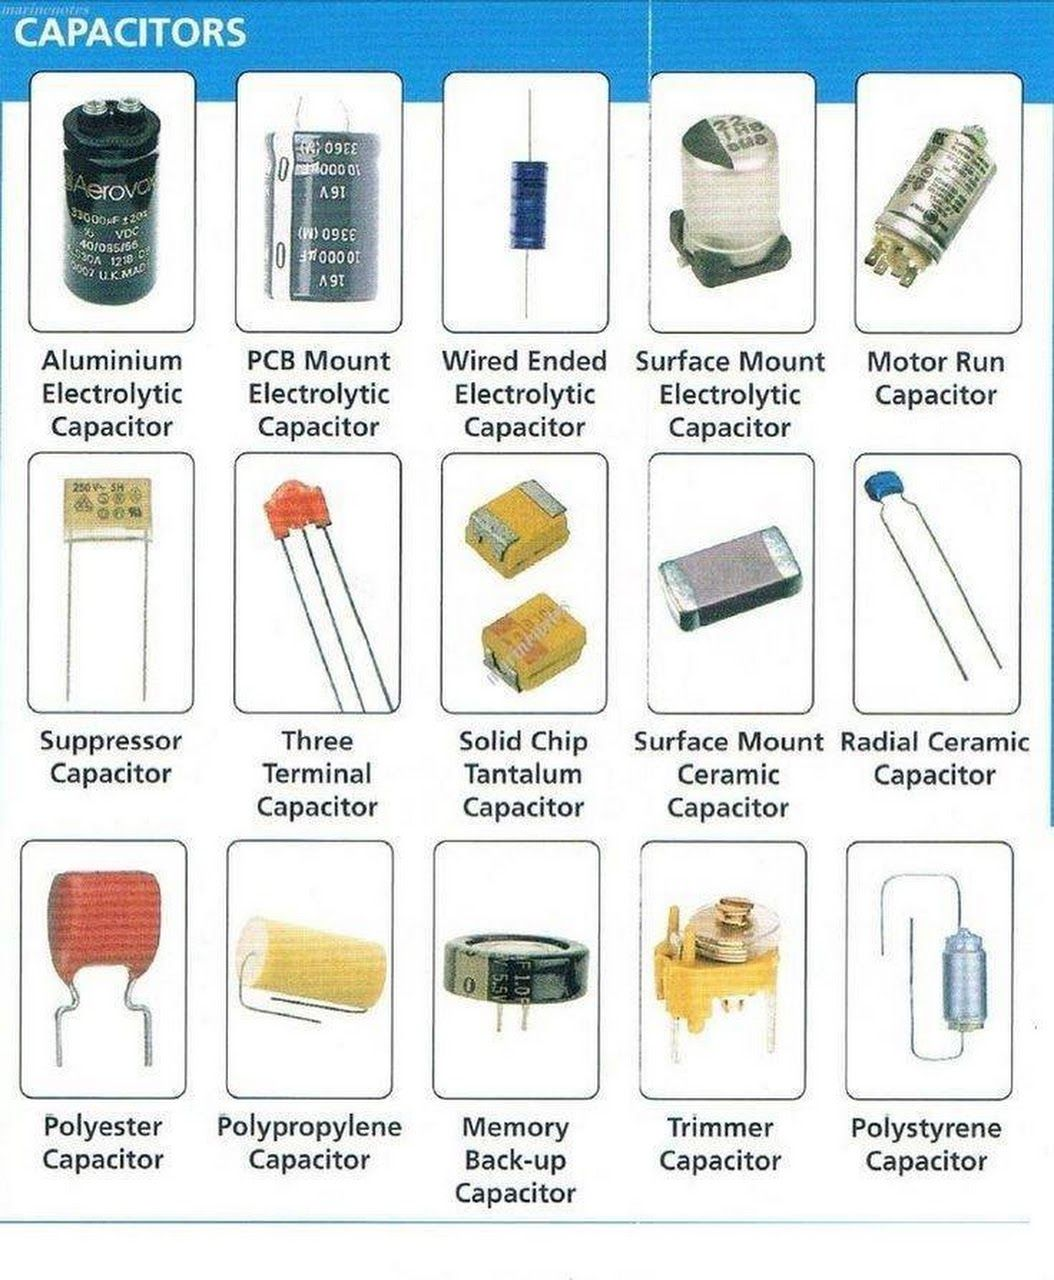 Pin By Pedrito On Electrnica Pinterest Arduino Components And Their Symbols Electronics Projects Info Home Fast Discount Finder